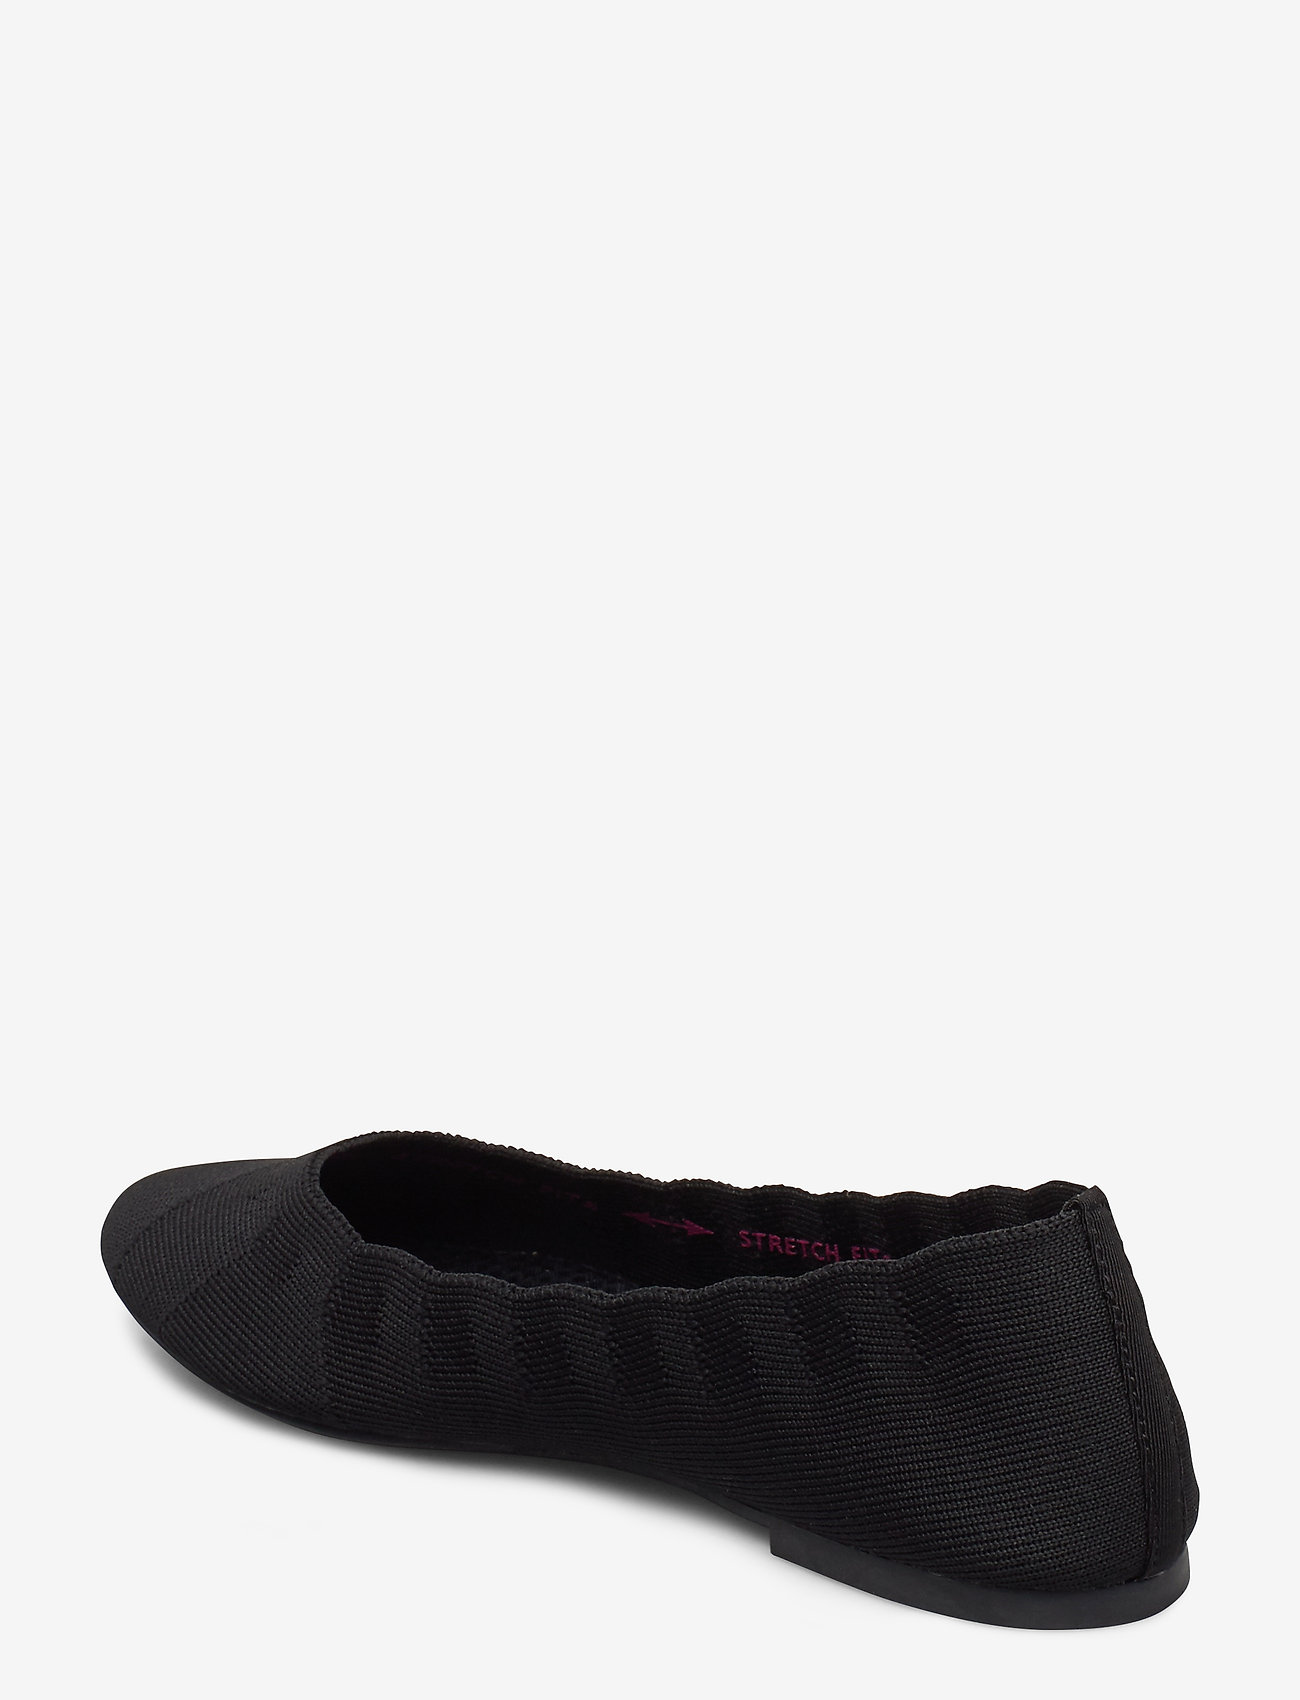 Skechers Womens Cleo - Bewitch Blk Black